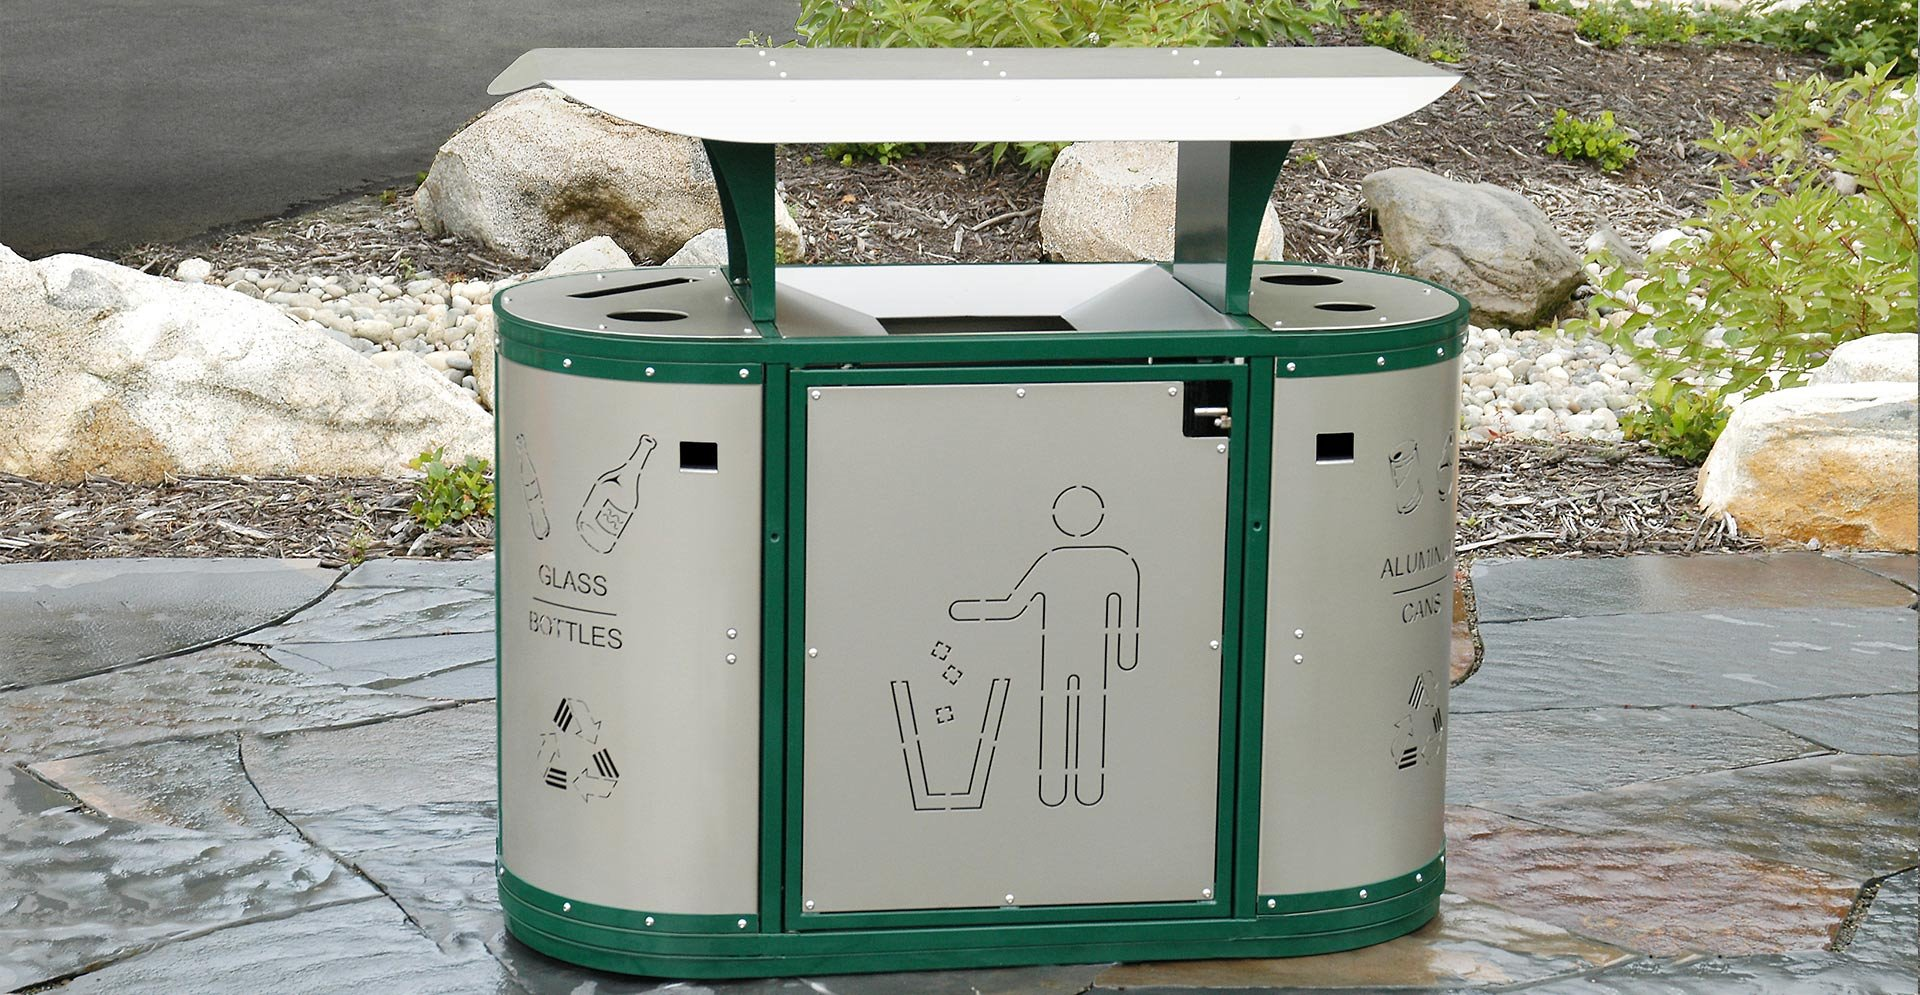 Free standing commercial trash bin with 3 compartments